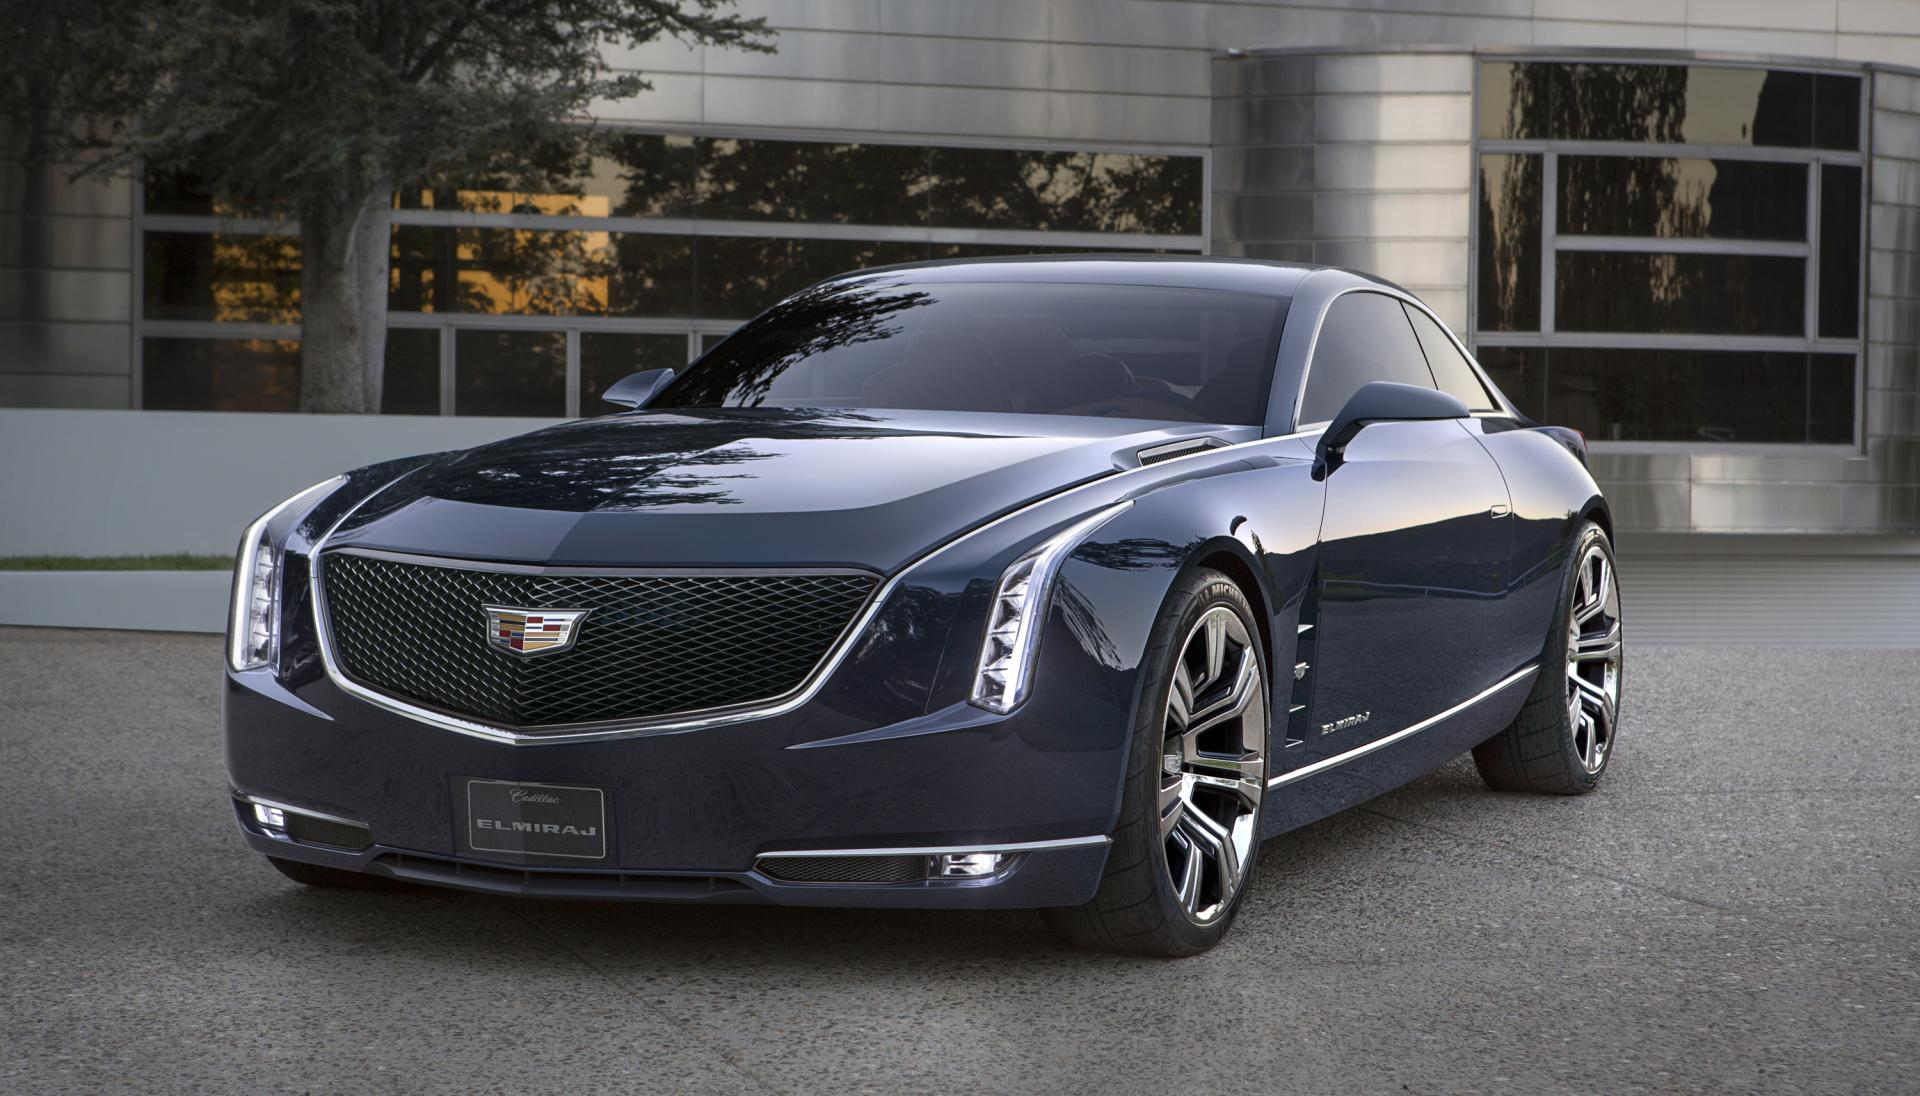 images sports flagship concept coupe future design loading elmiraj price cadillac previews shows photos luxury models